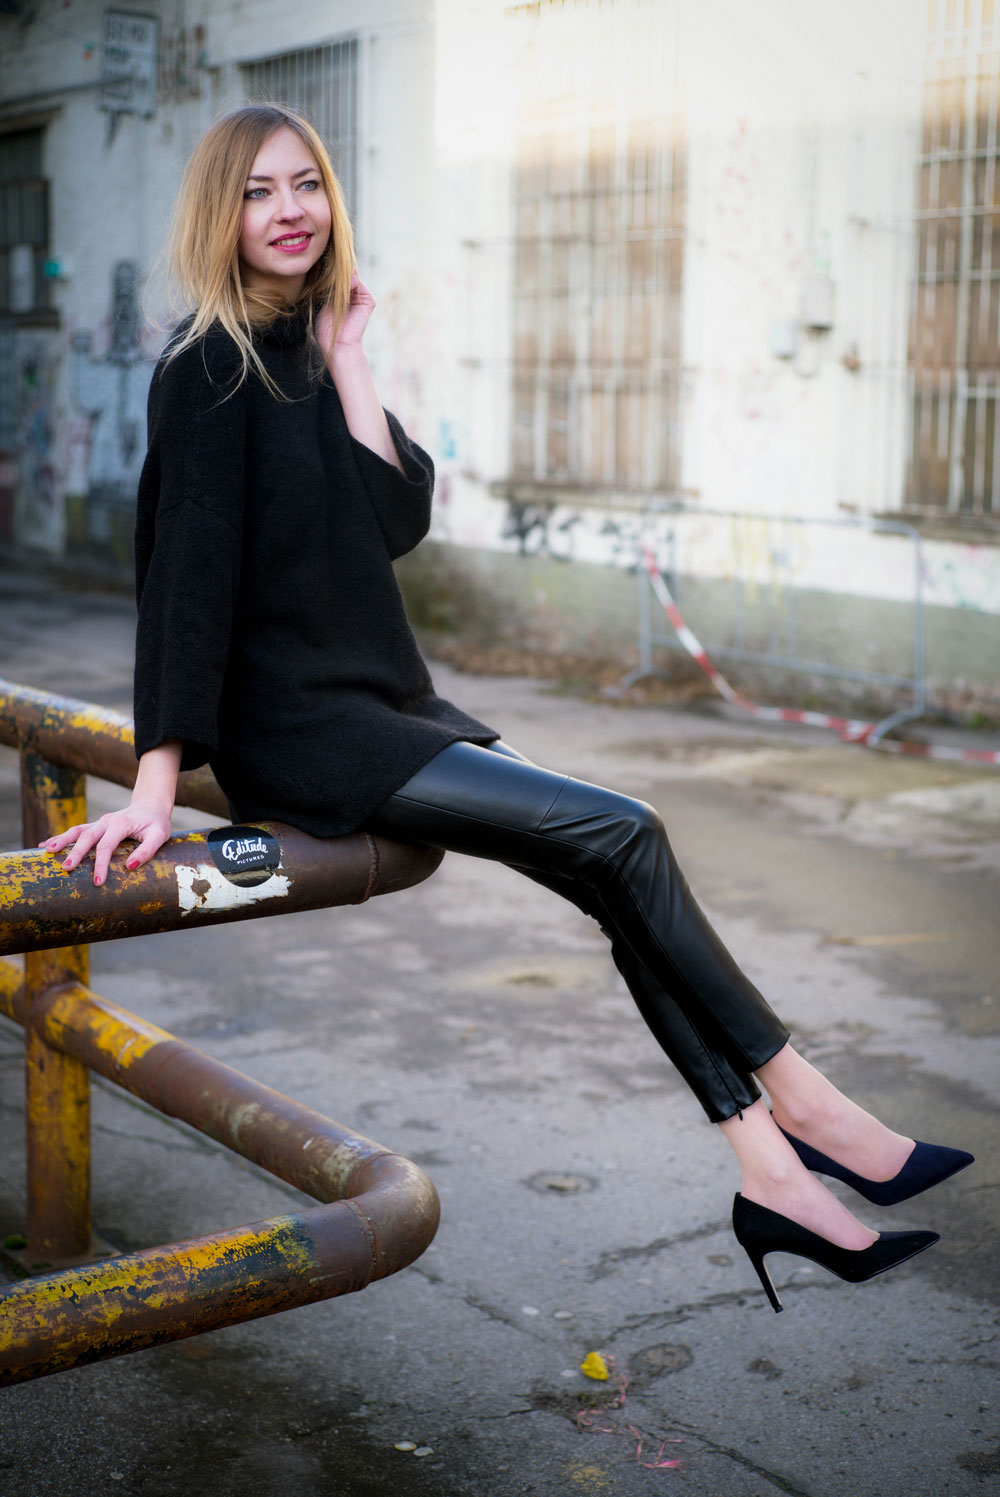 I've got my leather pants on today! by How I met my outfit II photos by: Cemal Sagnak